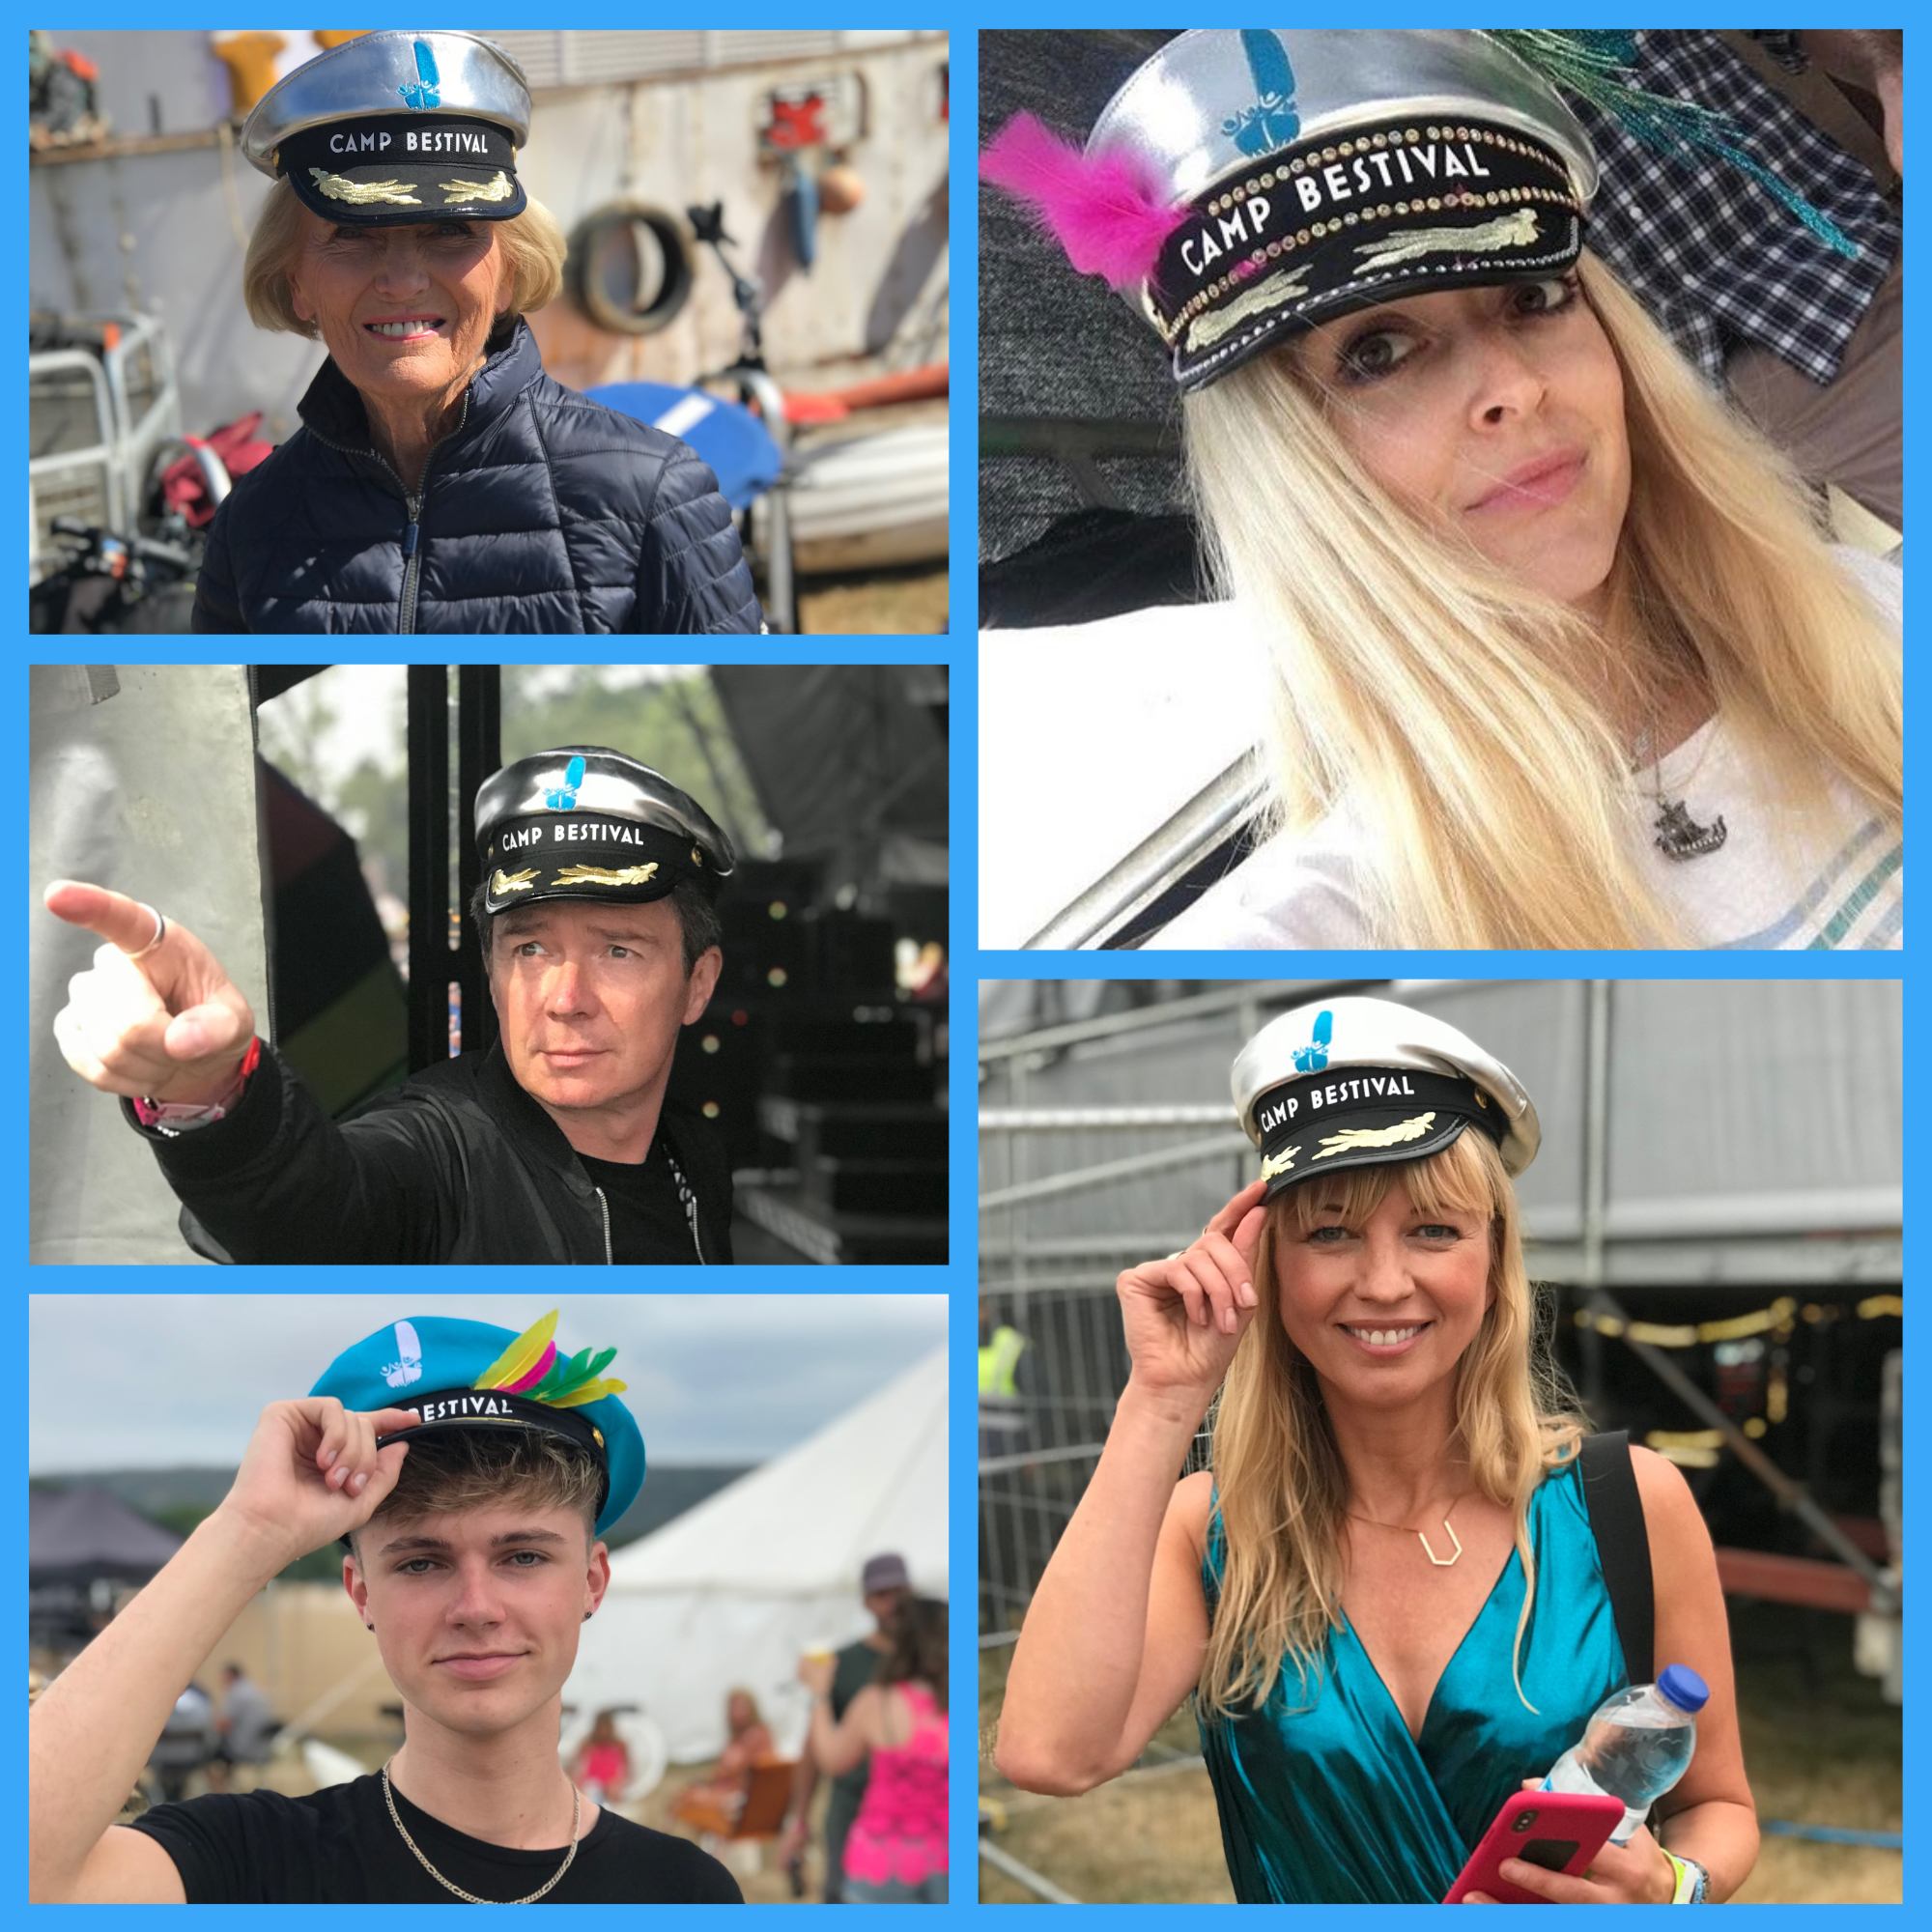 A collage of celebrities - Mary Berry, Rick Astley, Hrvy, Fearne Cotton and Sara Cox, wearing the Trust's limited edition Captain hats